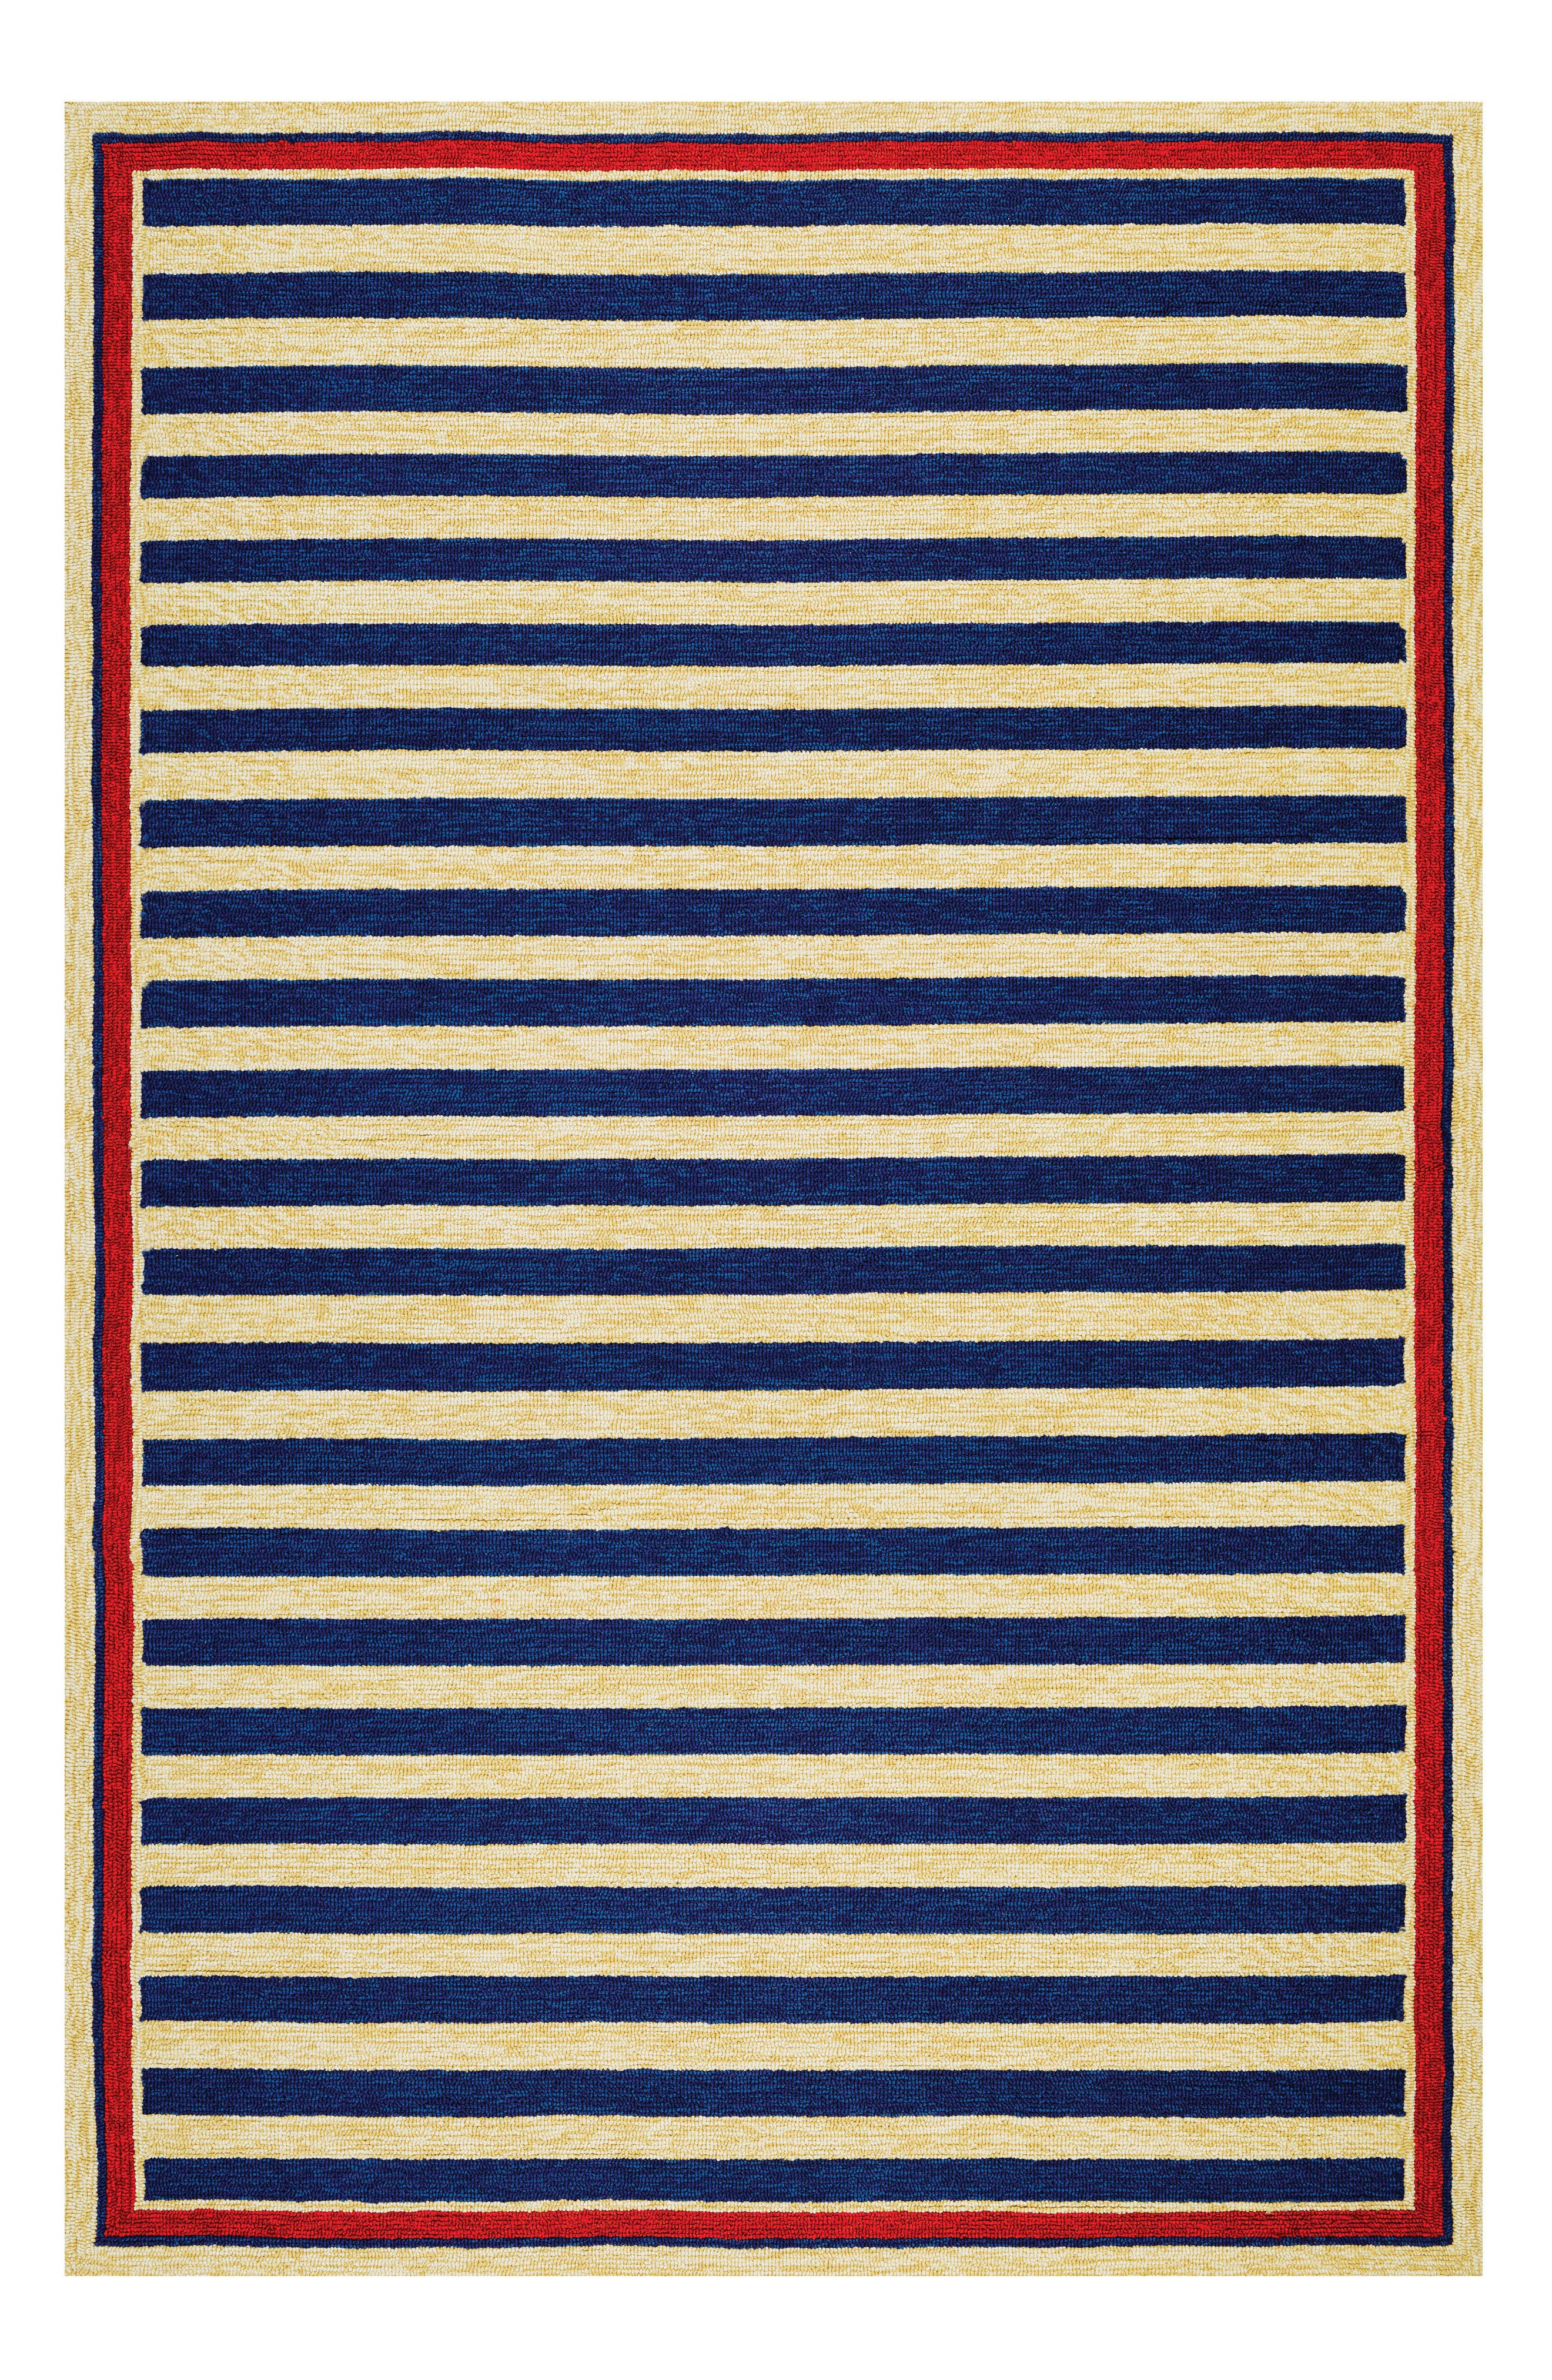 Nautical Stripes Indoor/Outdoor Rug,                             Alternate thumbnail 2, color,                             400